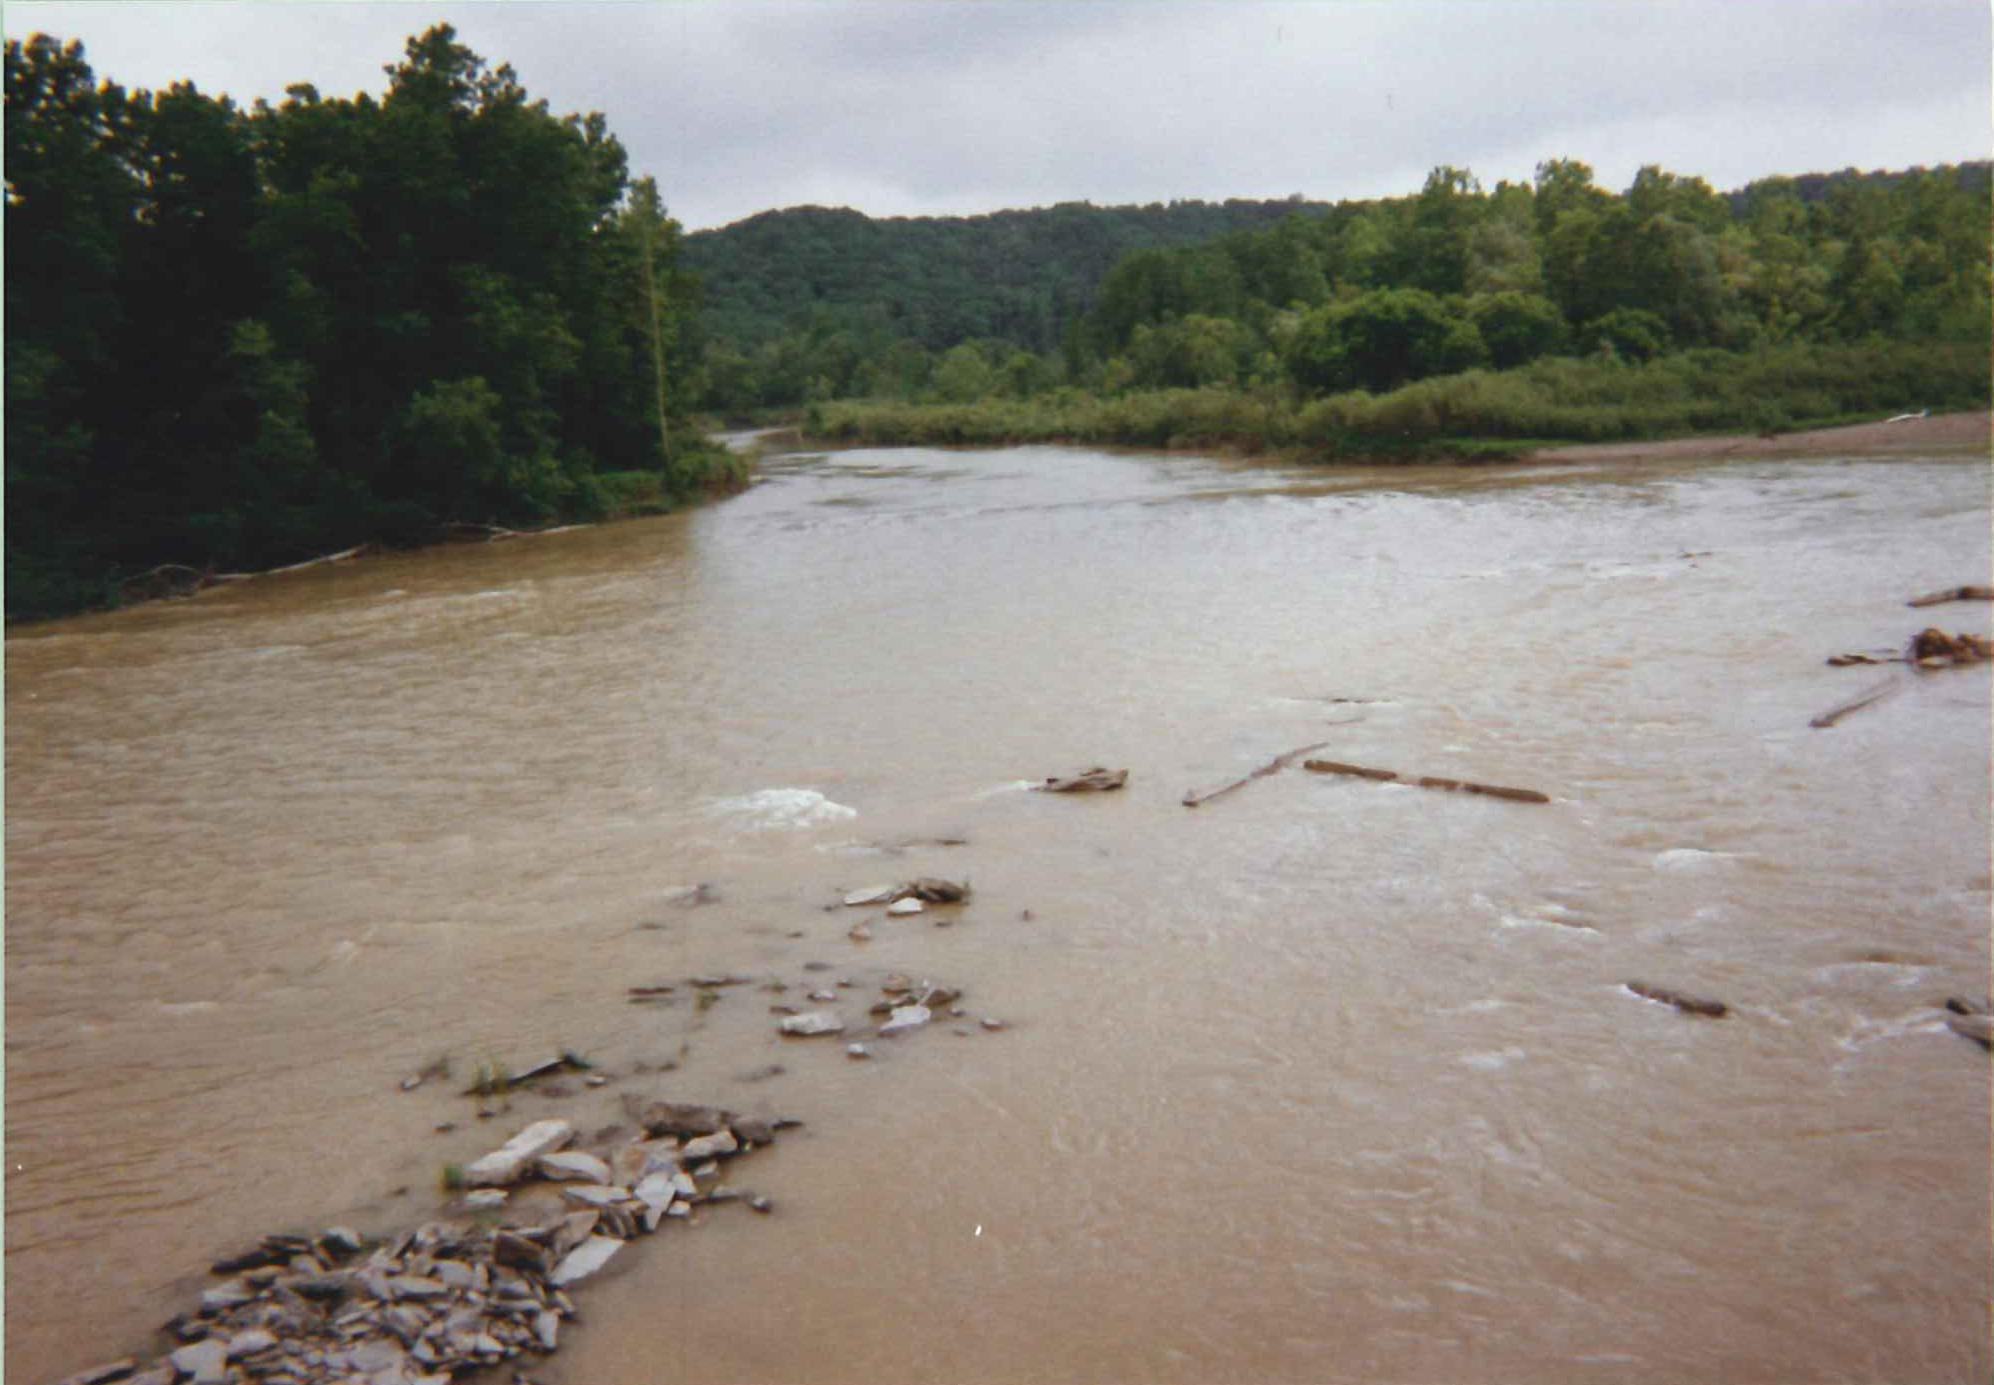 Photograph of the Genesee River at Portageville, NY (PRTN6) looking downstream